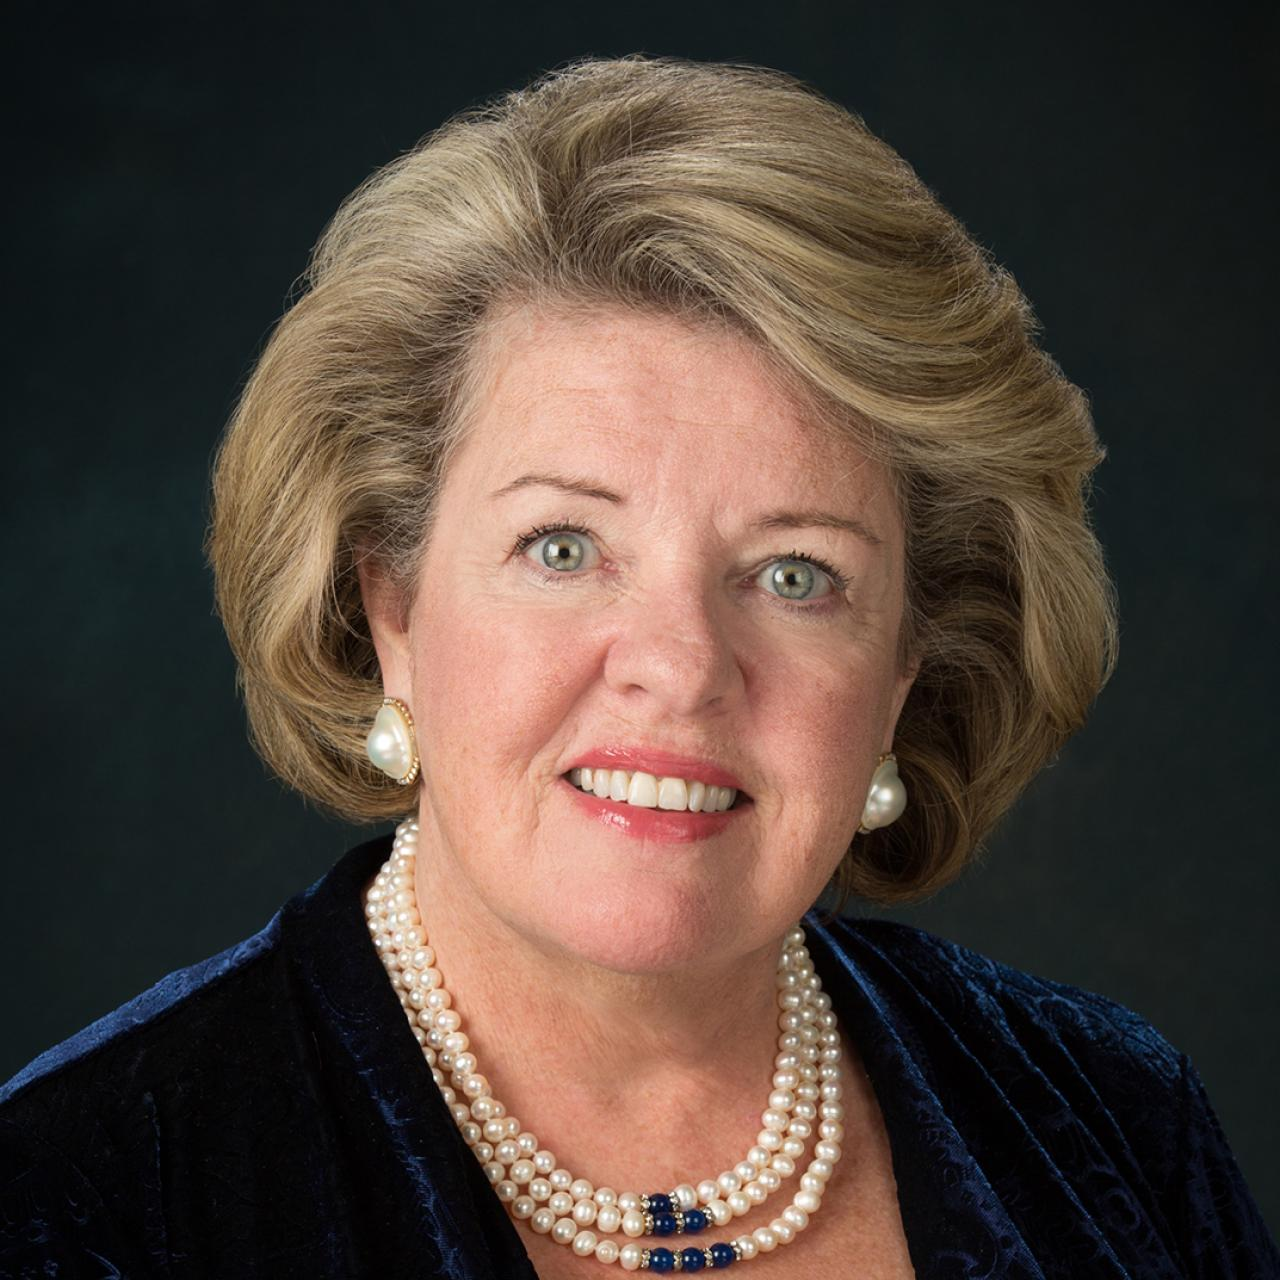 Image of Janet Porter